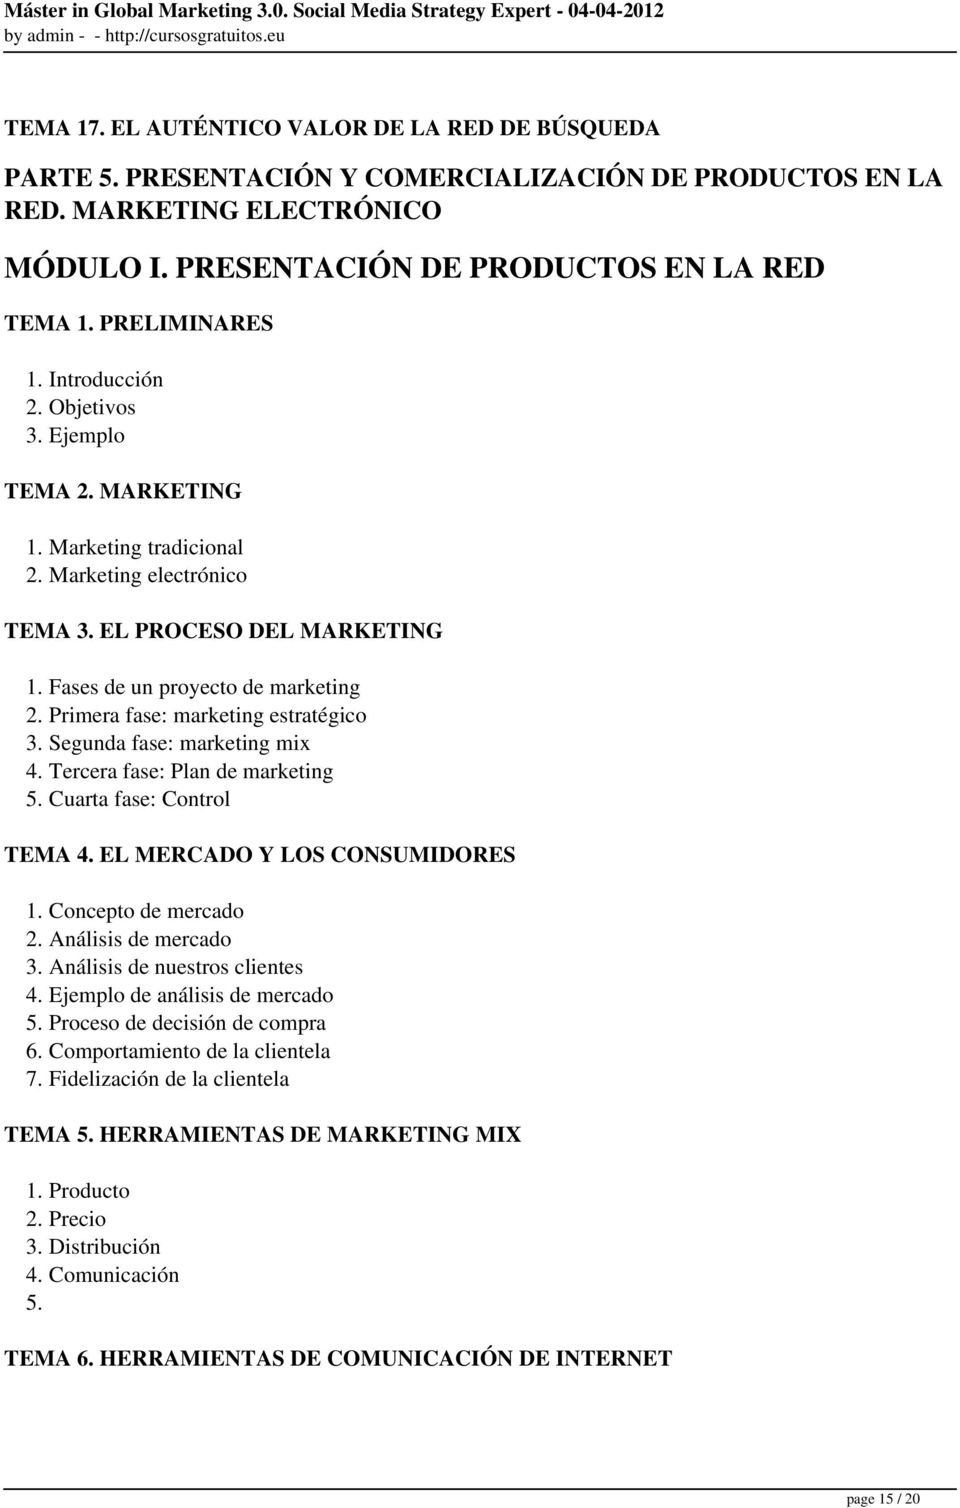 Primera fase: marketing estratégico 3. Segunda fase: marketing mix 4. Tercera fase: Plan de marketing 5. Cuarta fase: Control TEMA 4. EL MERCADO Y LOS CONSUMIDORES 1. Concepto de mercado 2.